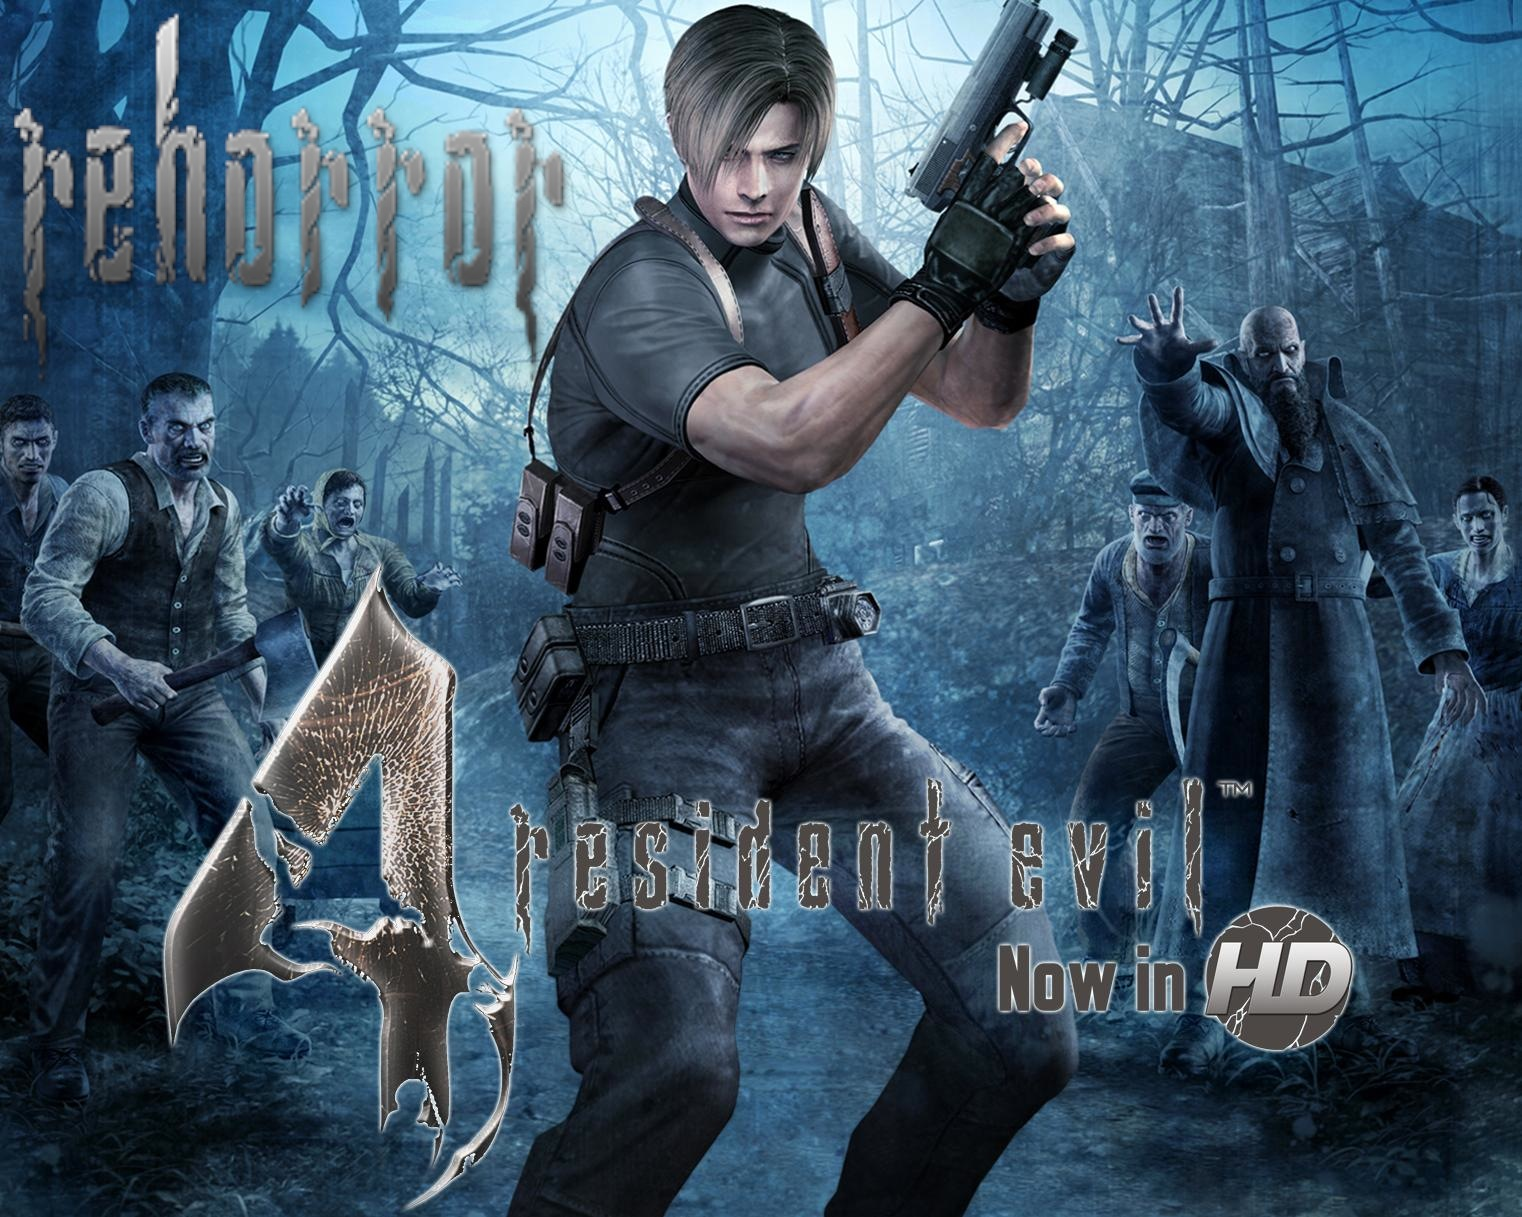 reHorror: Resident Evil 4 HD review